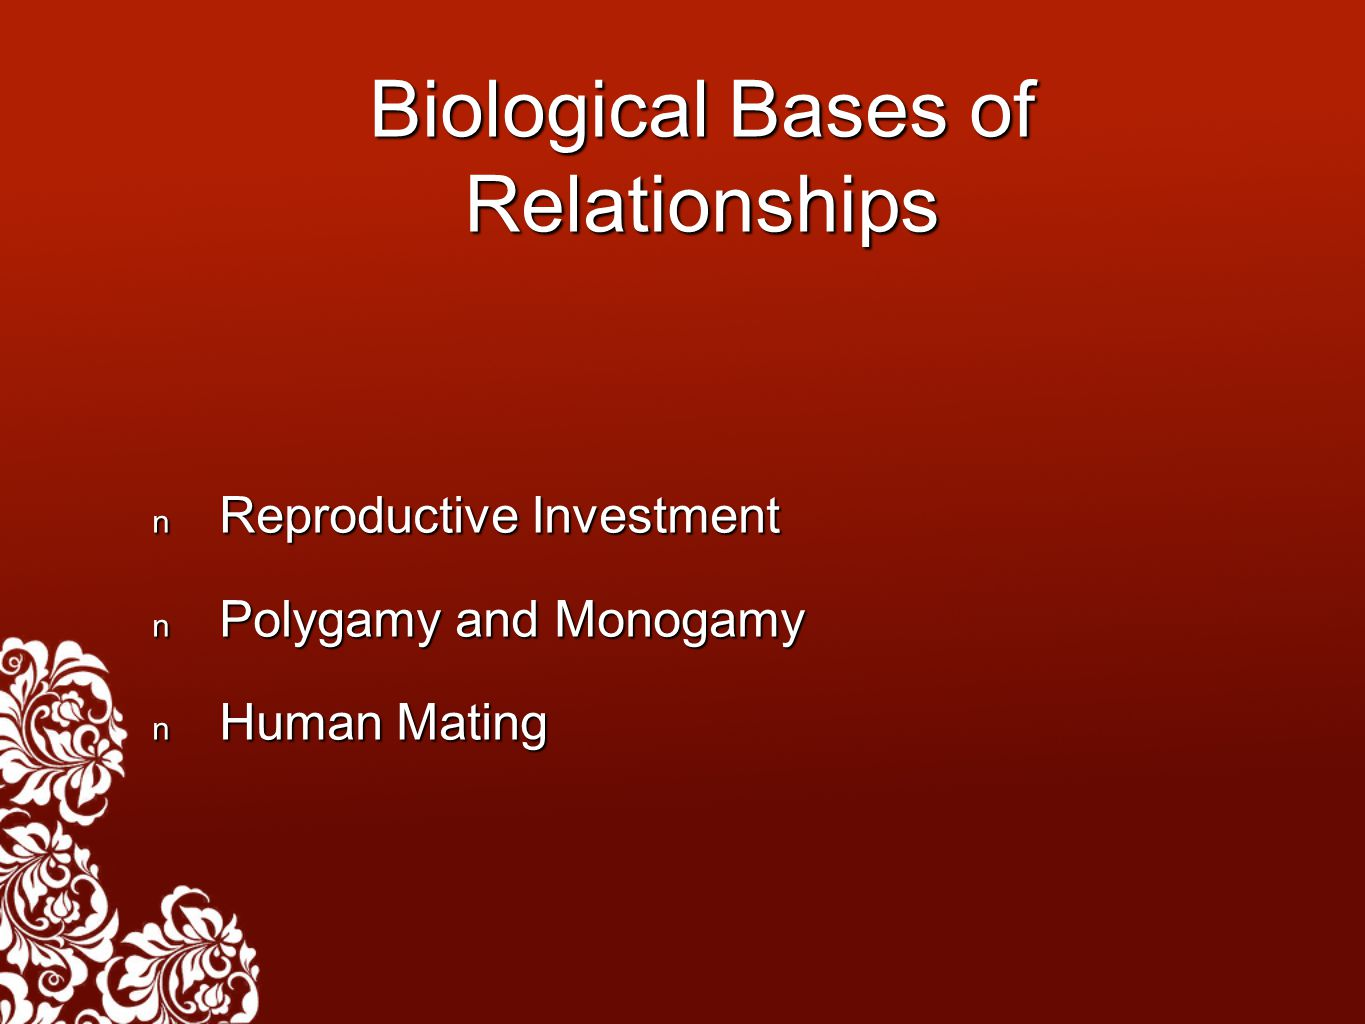 Biological Bases of Relationships Reproductive Investment Reproductive Investment Polygamy and Monogamy Polygamy and Monogamy Human Mating Human Matin